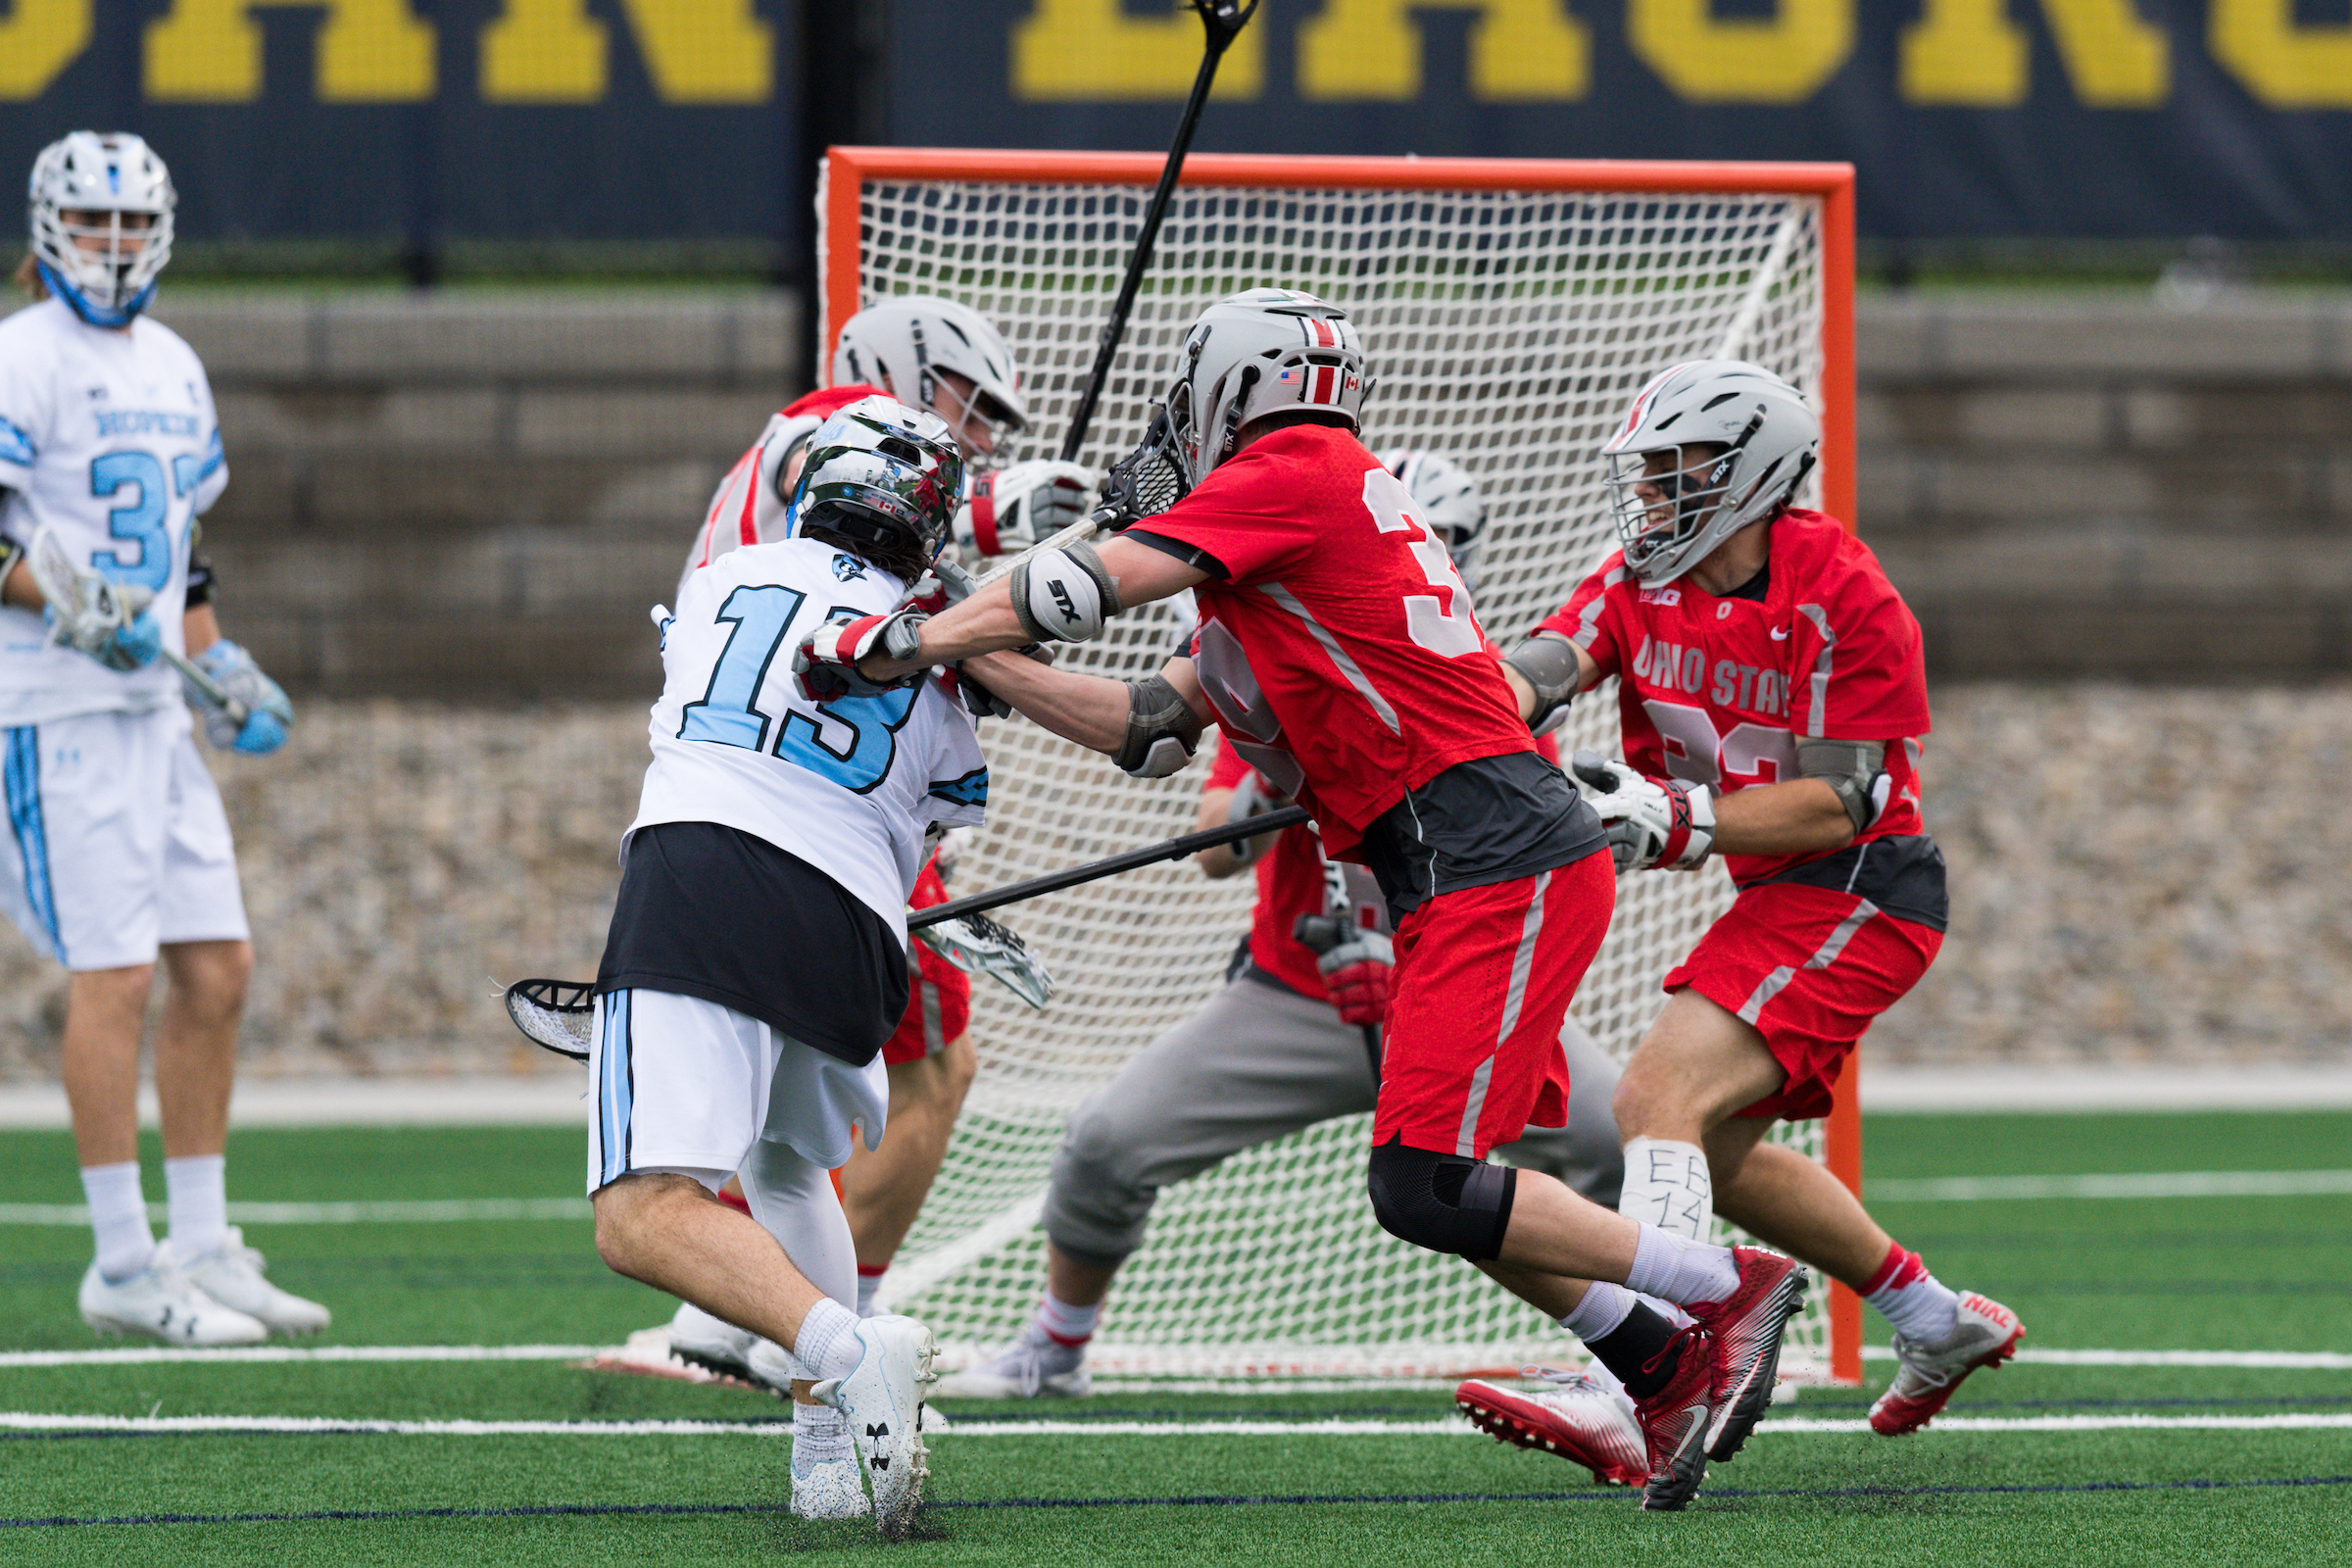 sports shoes 2f781 d65fd BUCKEYES IN A NUTSHELL • Ranked No. 8 in this week s USILA Coach s Poll, Ohio  State comes into Sunday s match-up with a 7-2 overall record and 0-2 mark  in ...